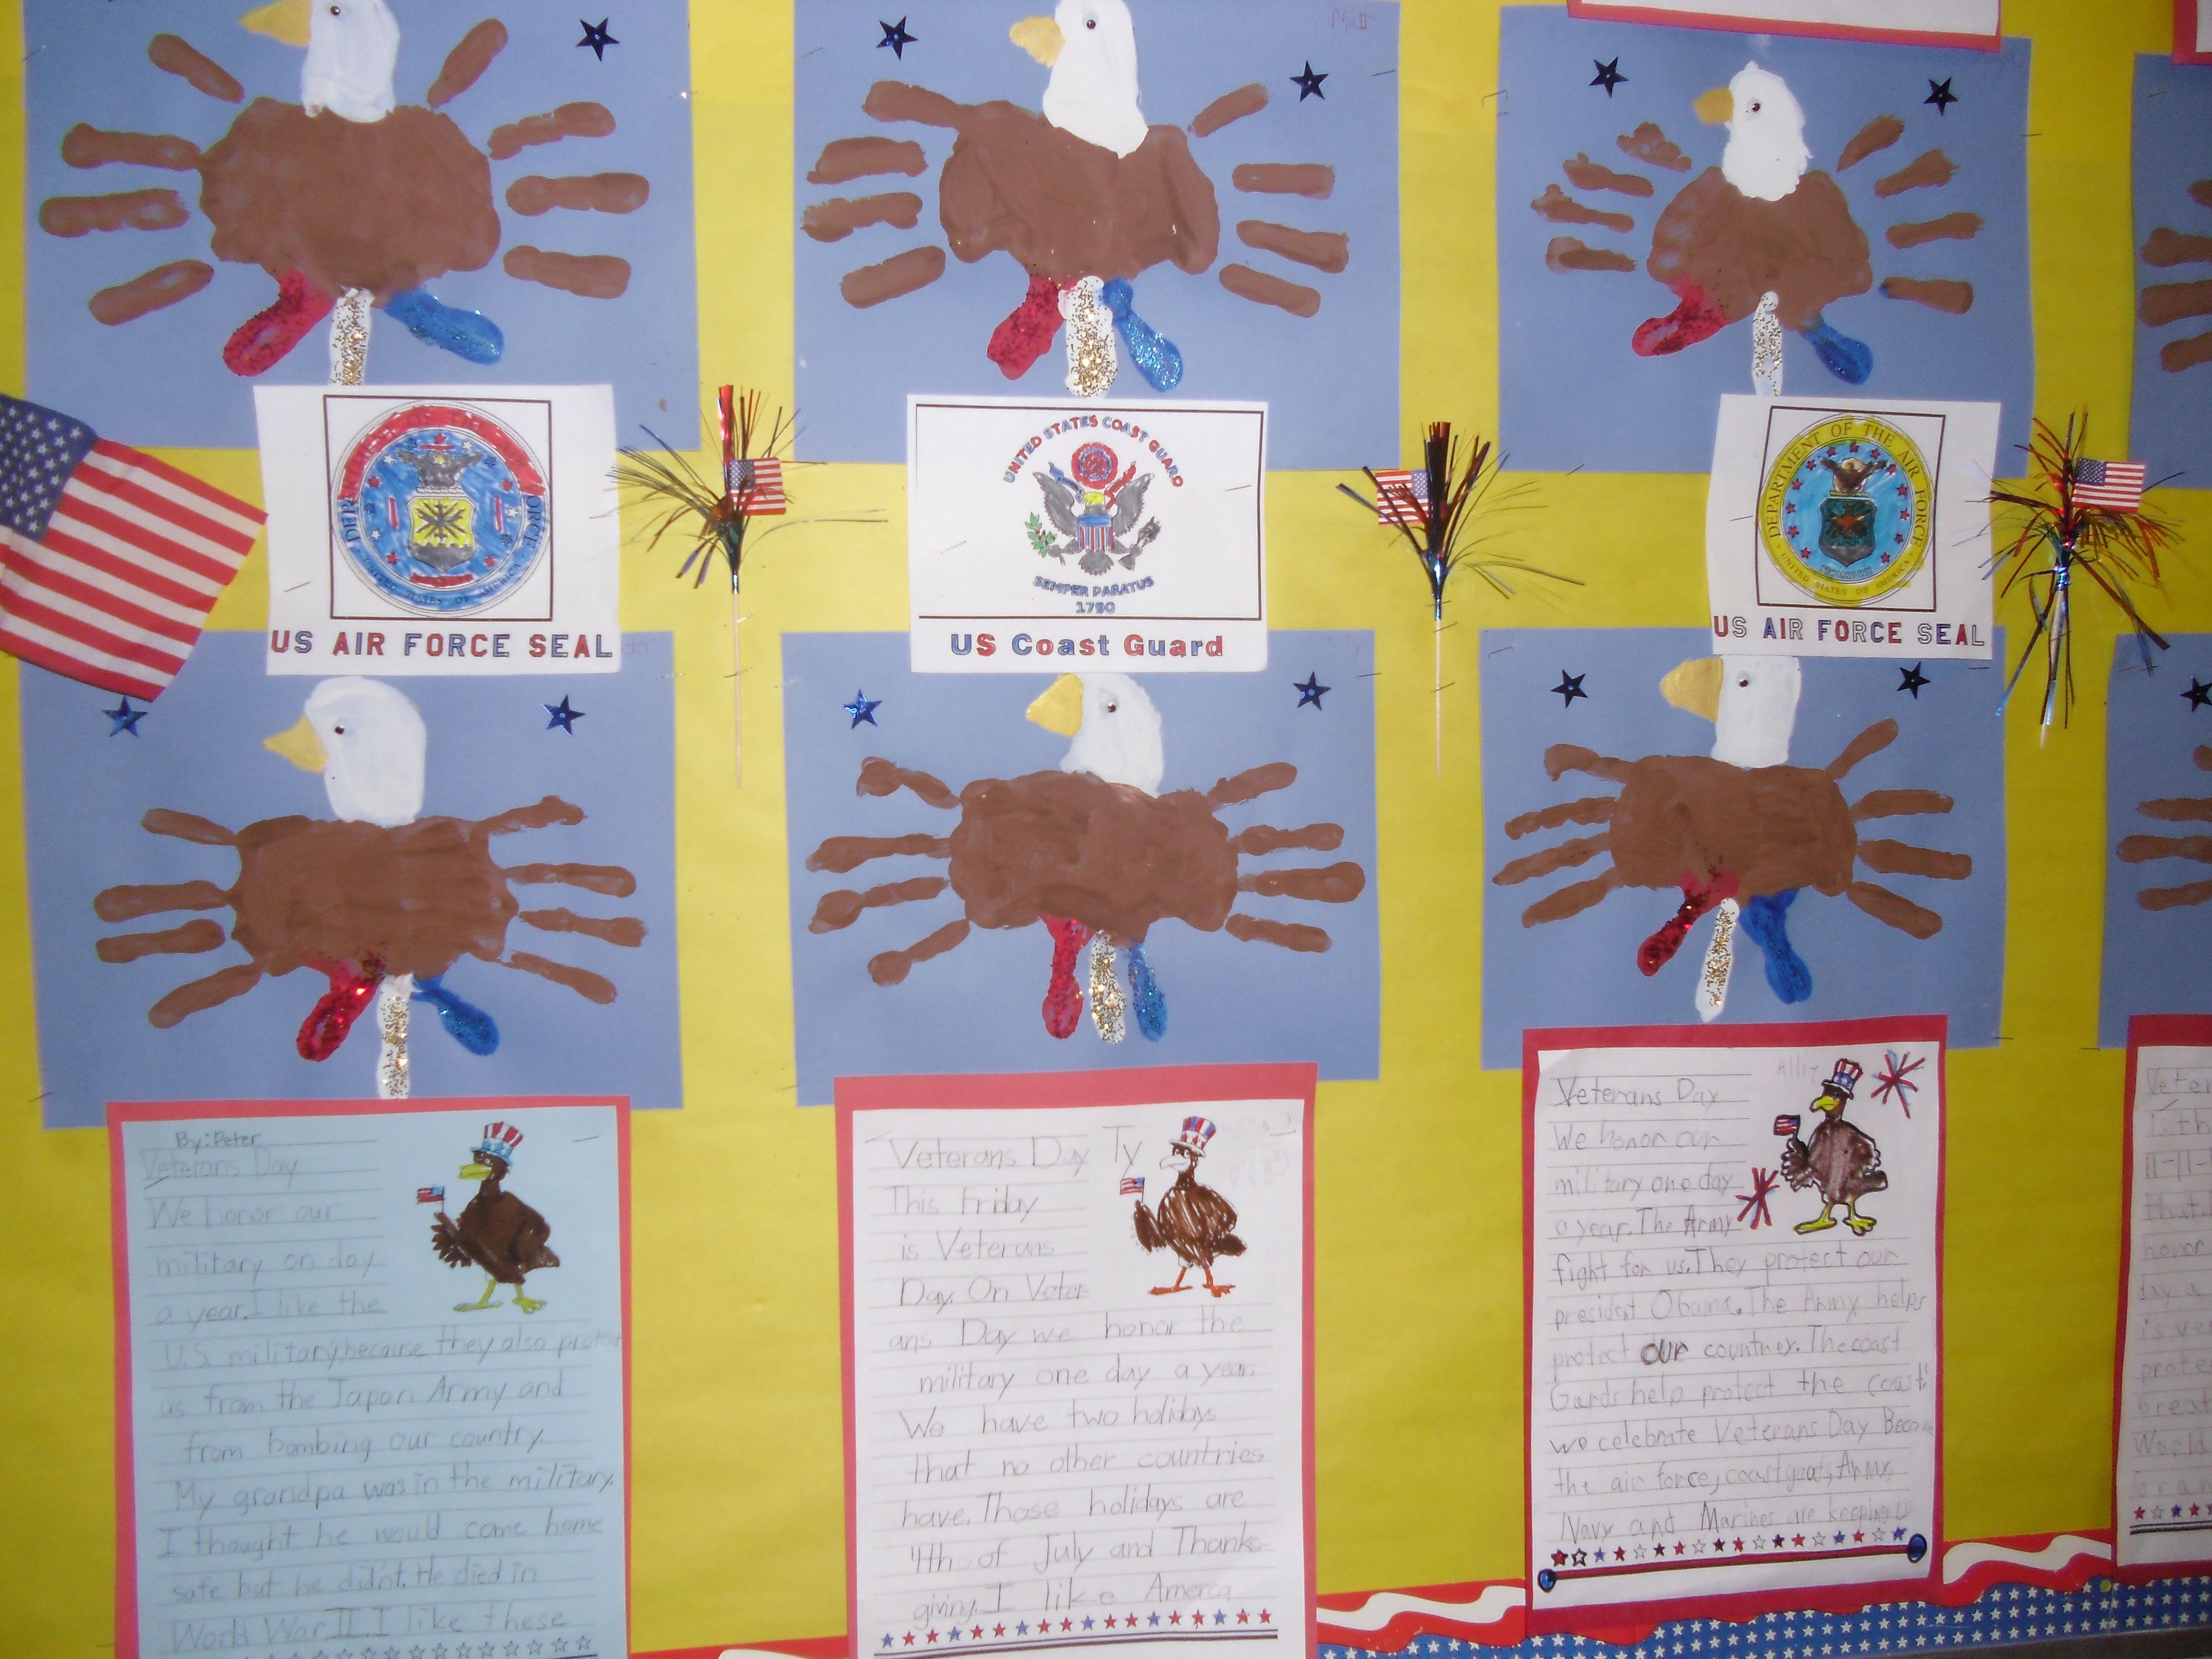 This Was A Fun American Eagle Handprint Art We Did On 11